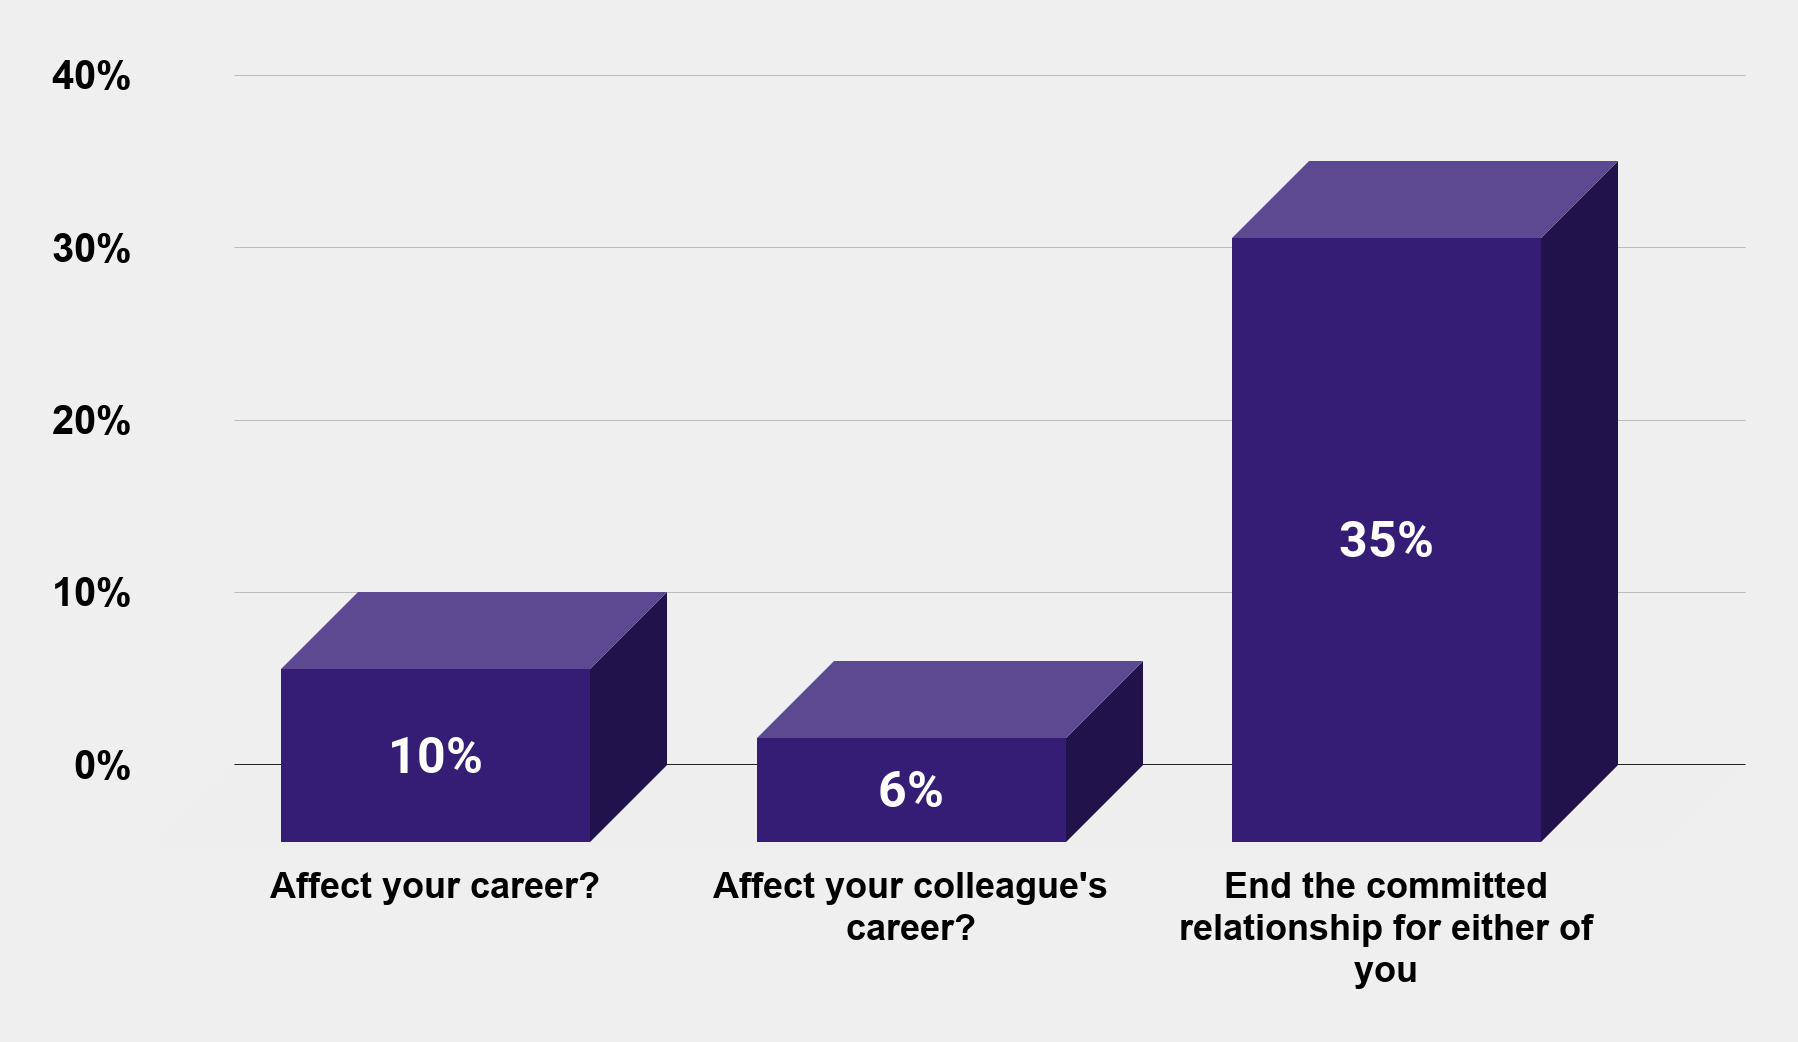 Did you affair with a colleague (U.S 2018) Charts Graphs, Stats